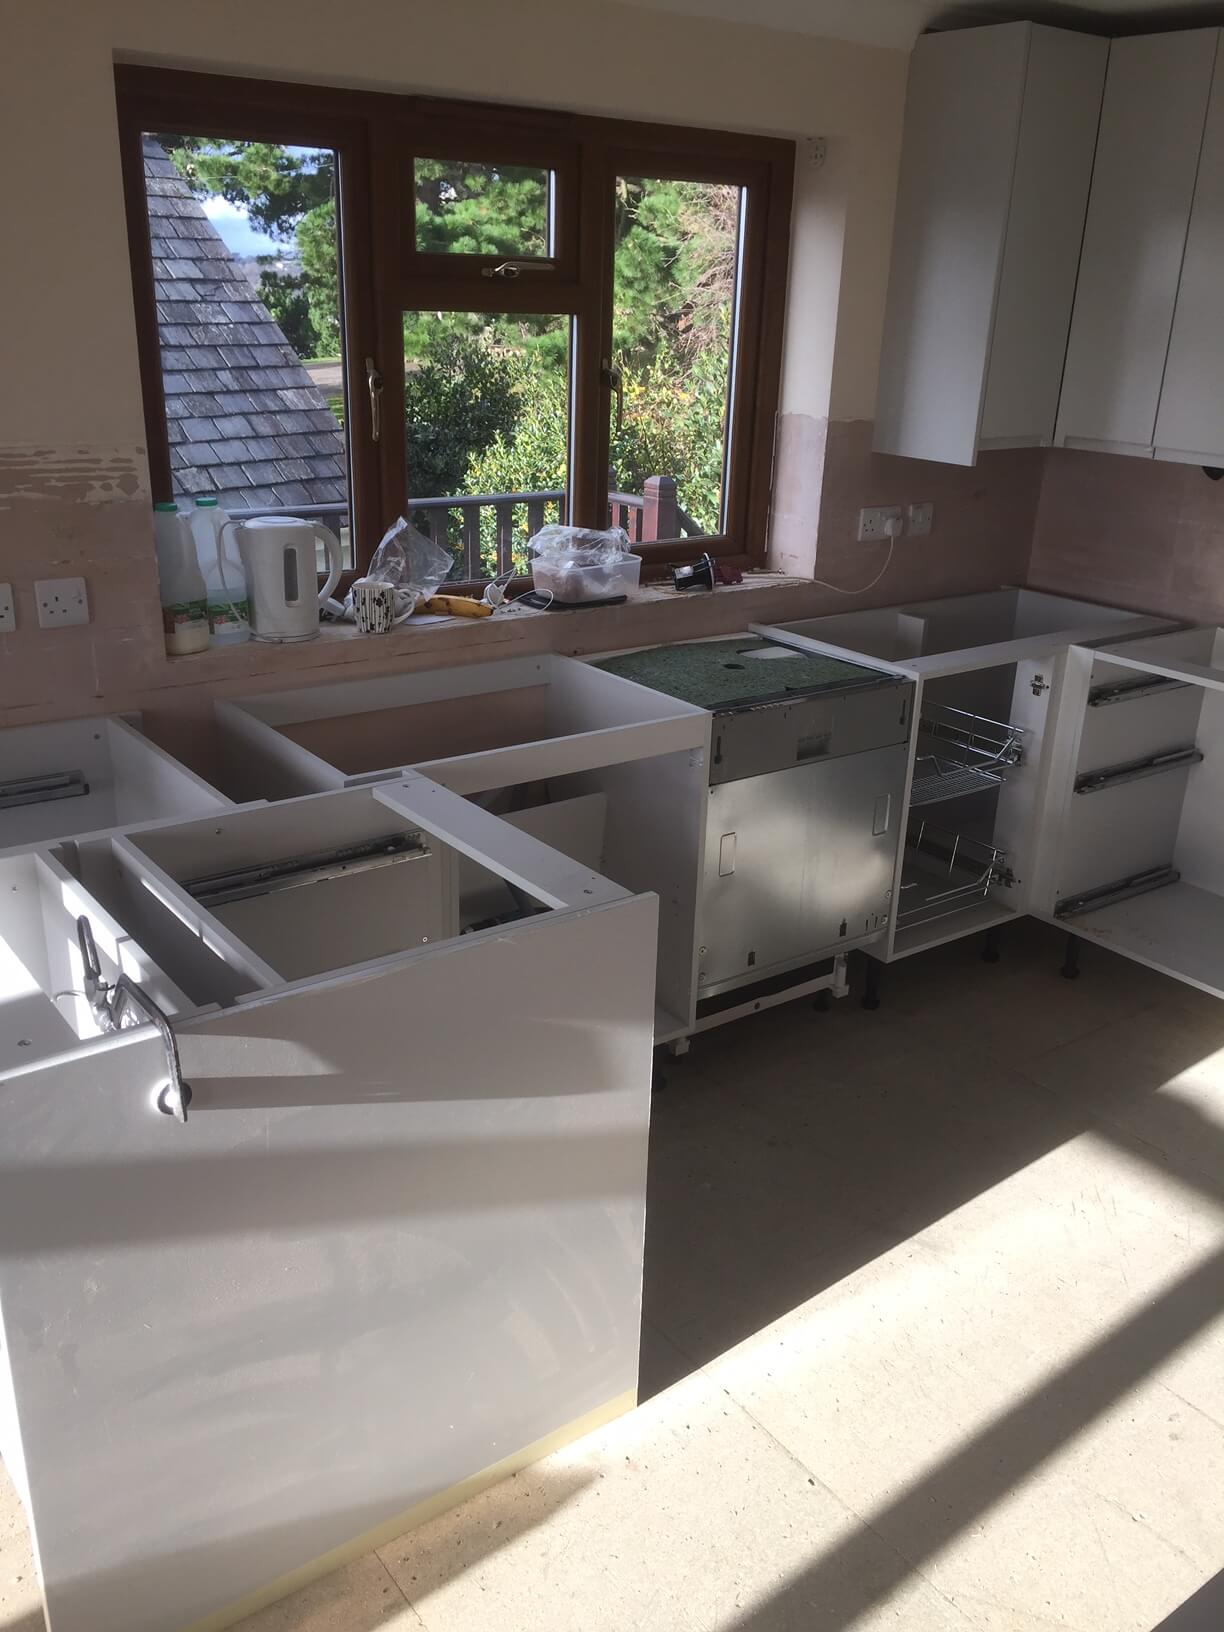 Island Units In Place